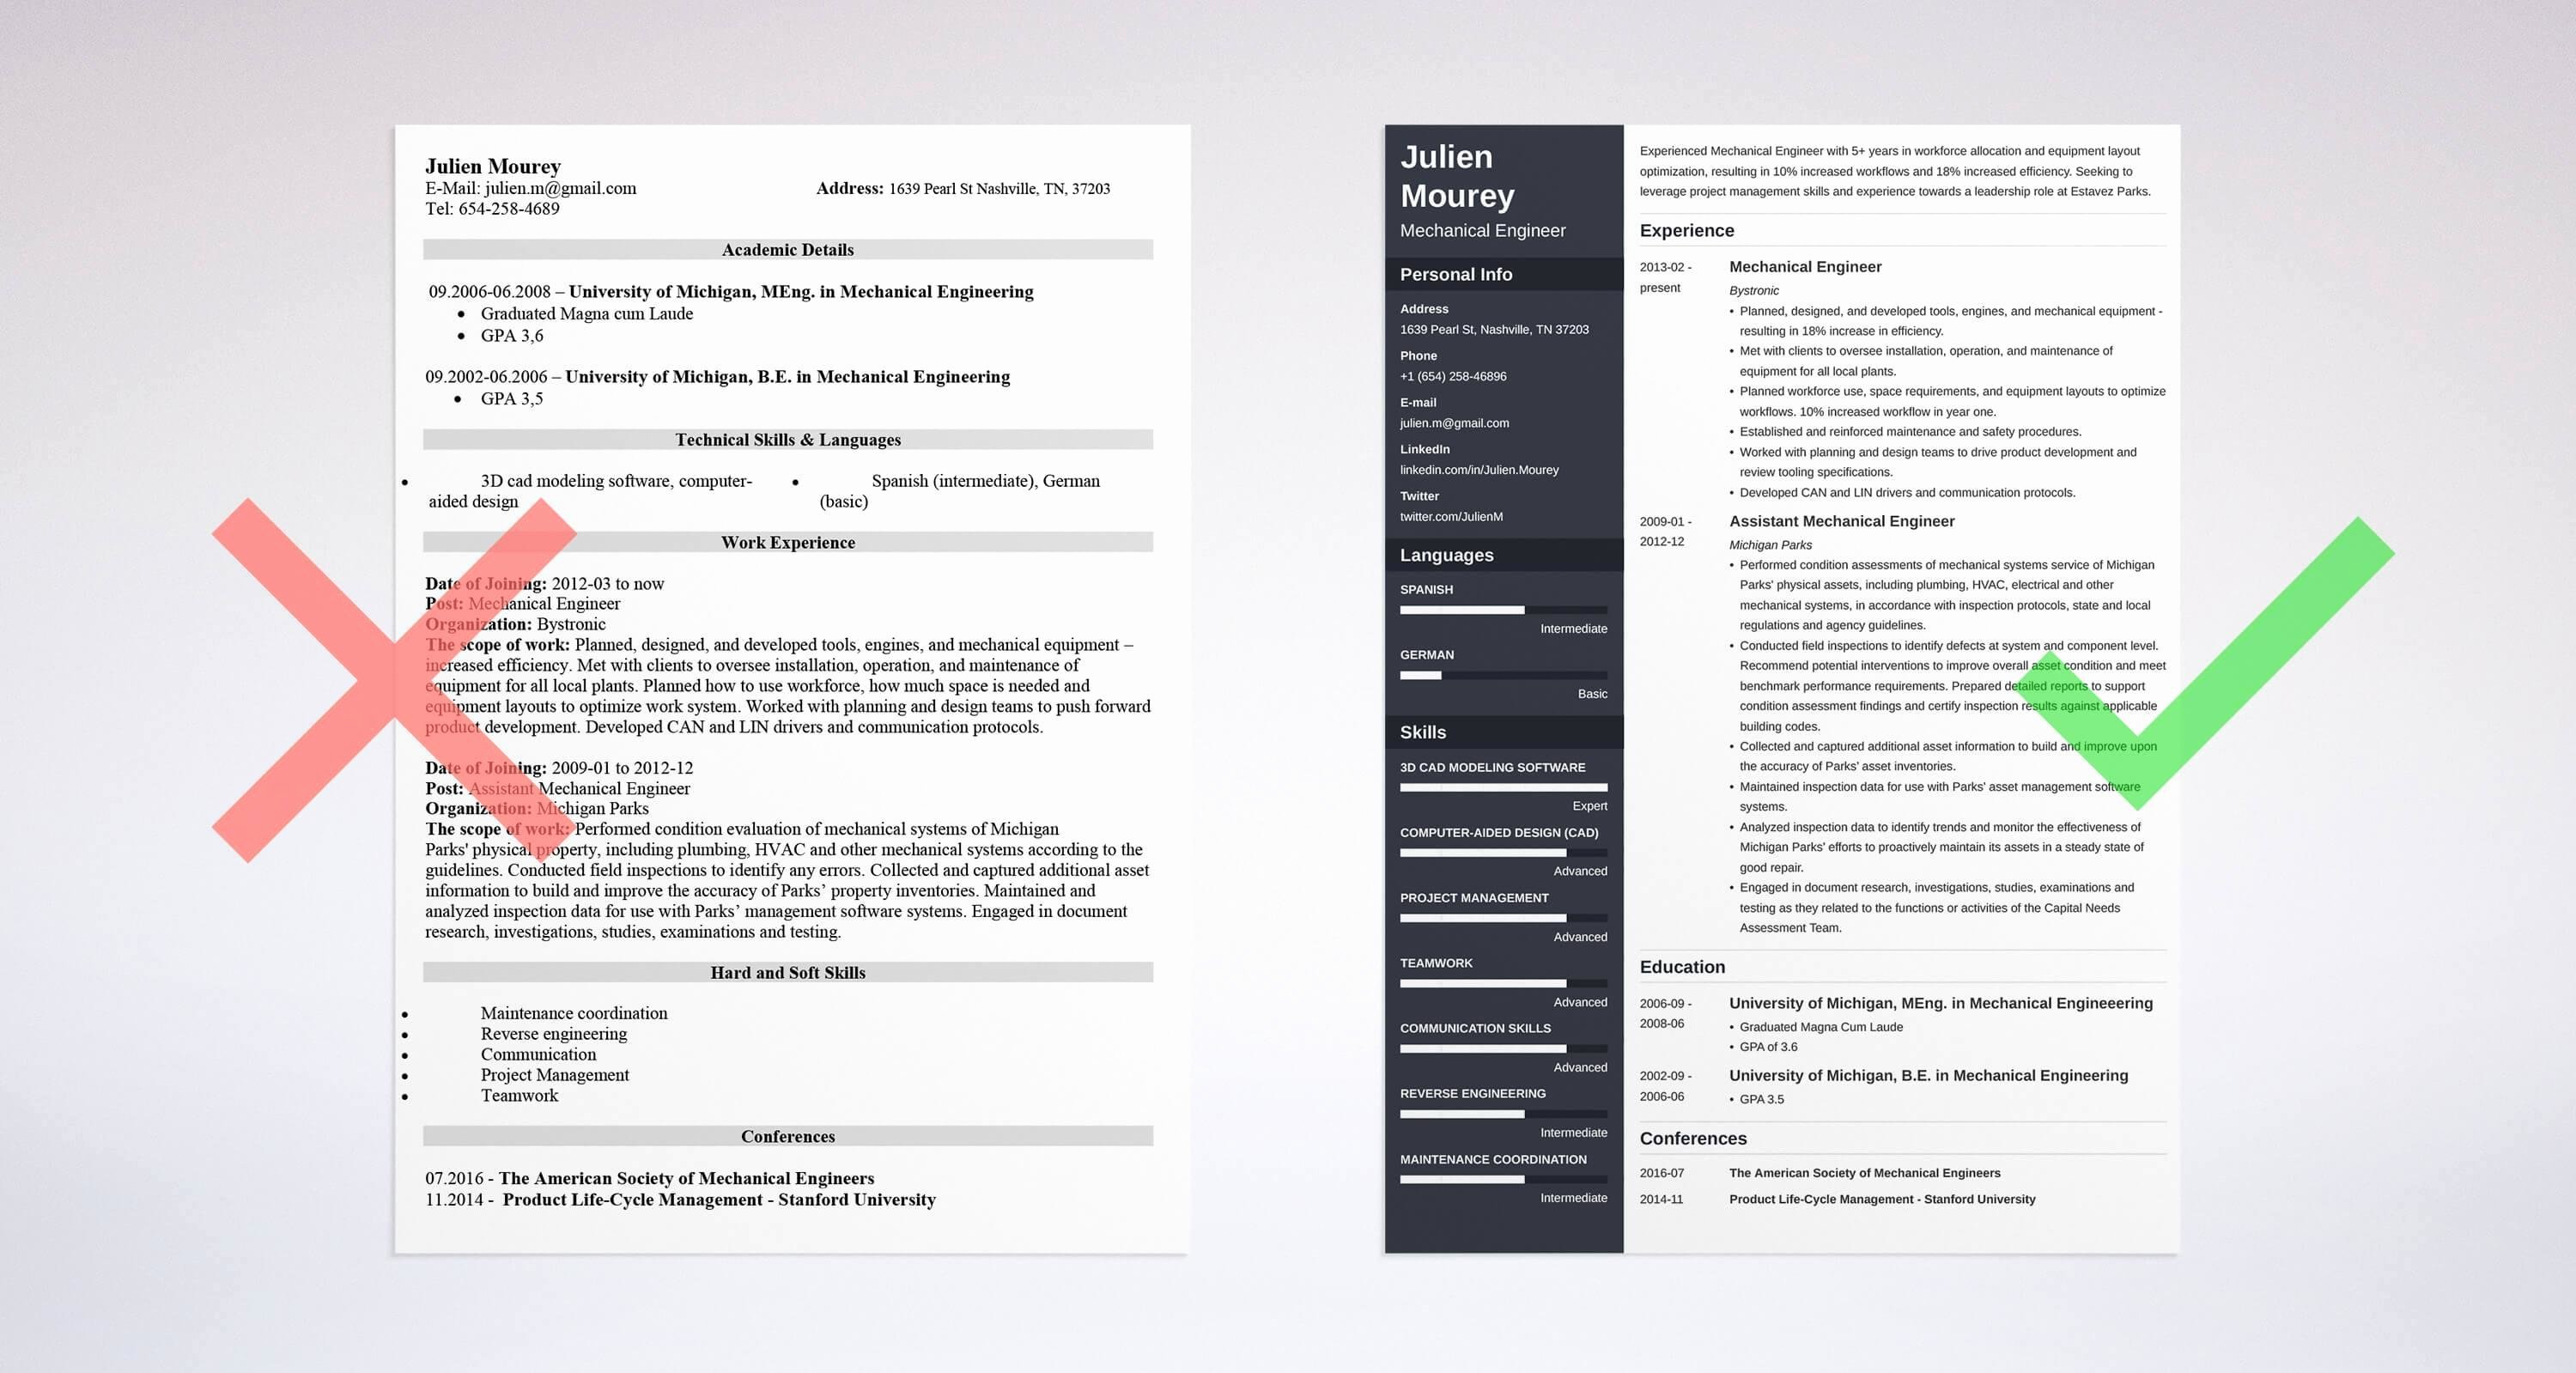 Mechanical Engineering Curriculum Vitae Best Of Mechanical Engineering Resume Sample & Guide [20 Examples]